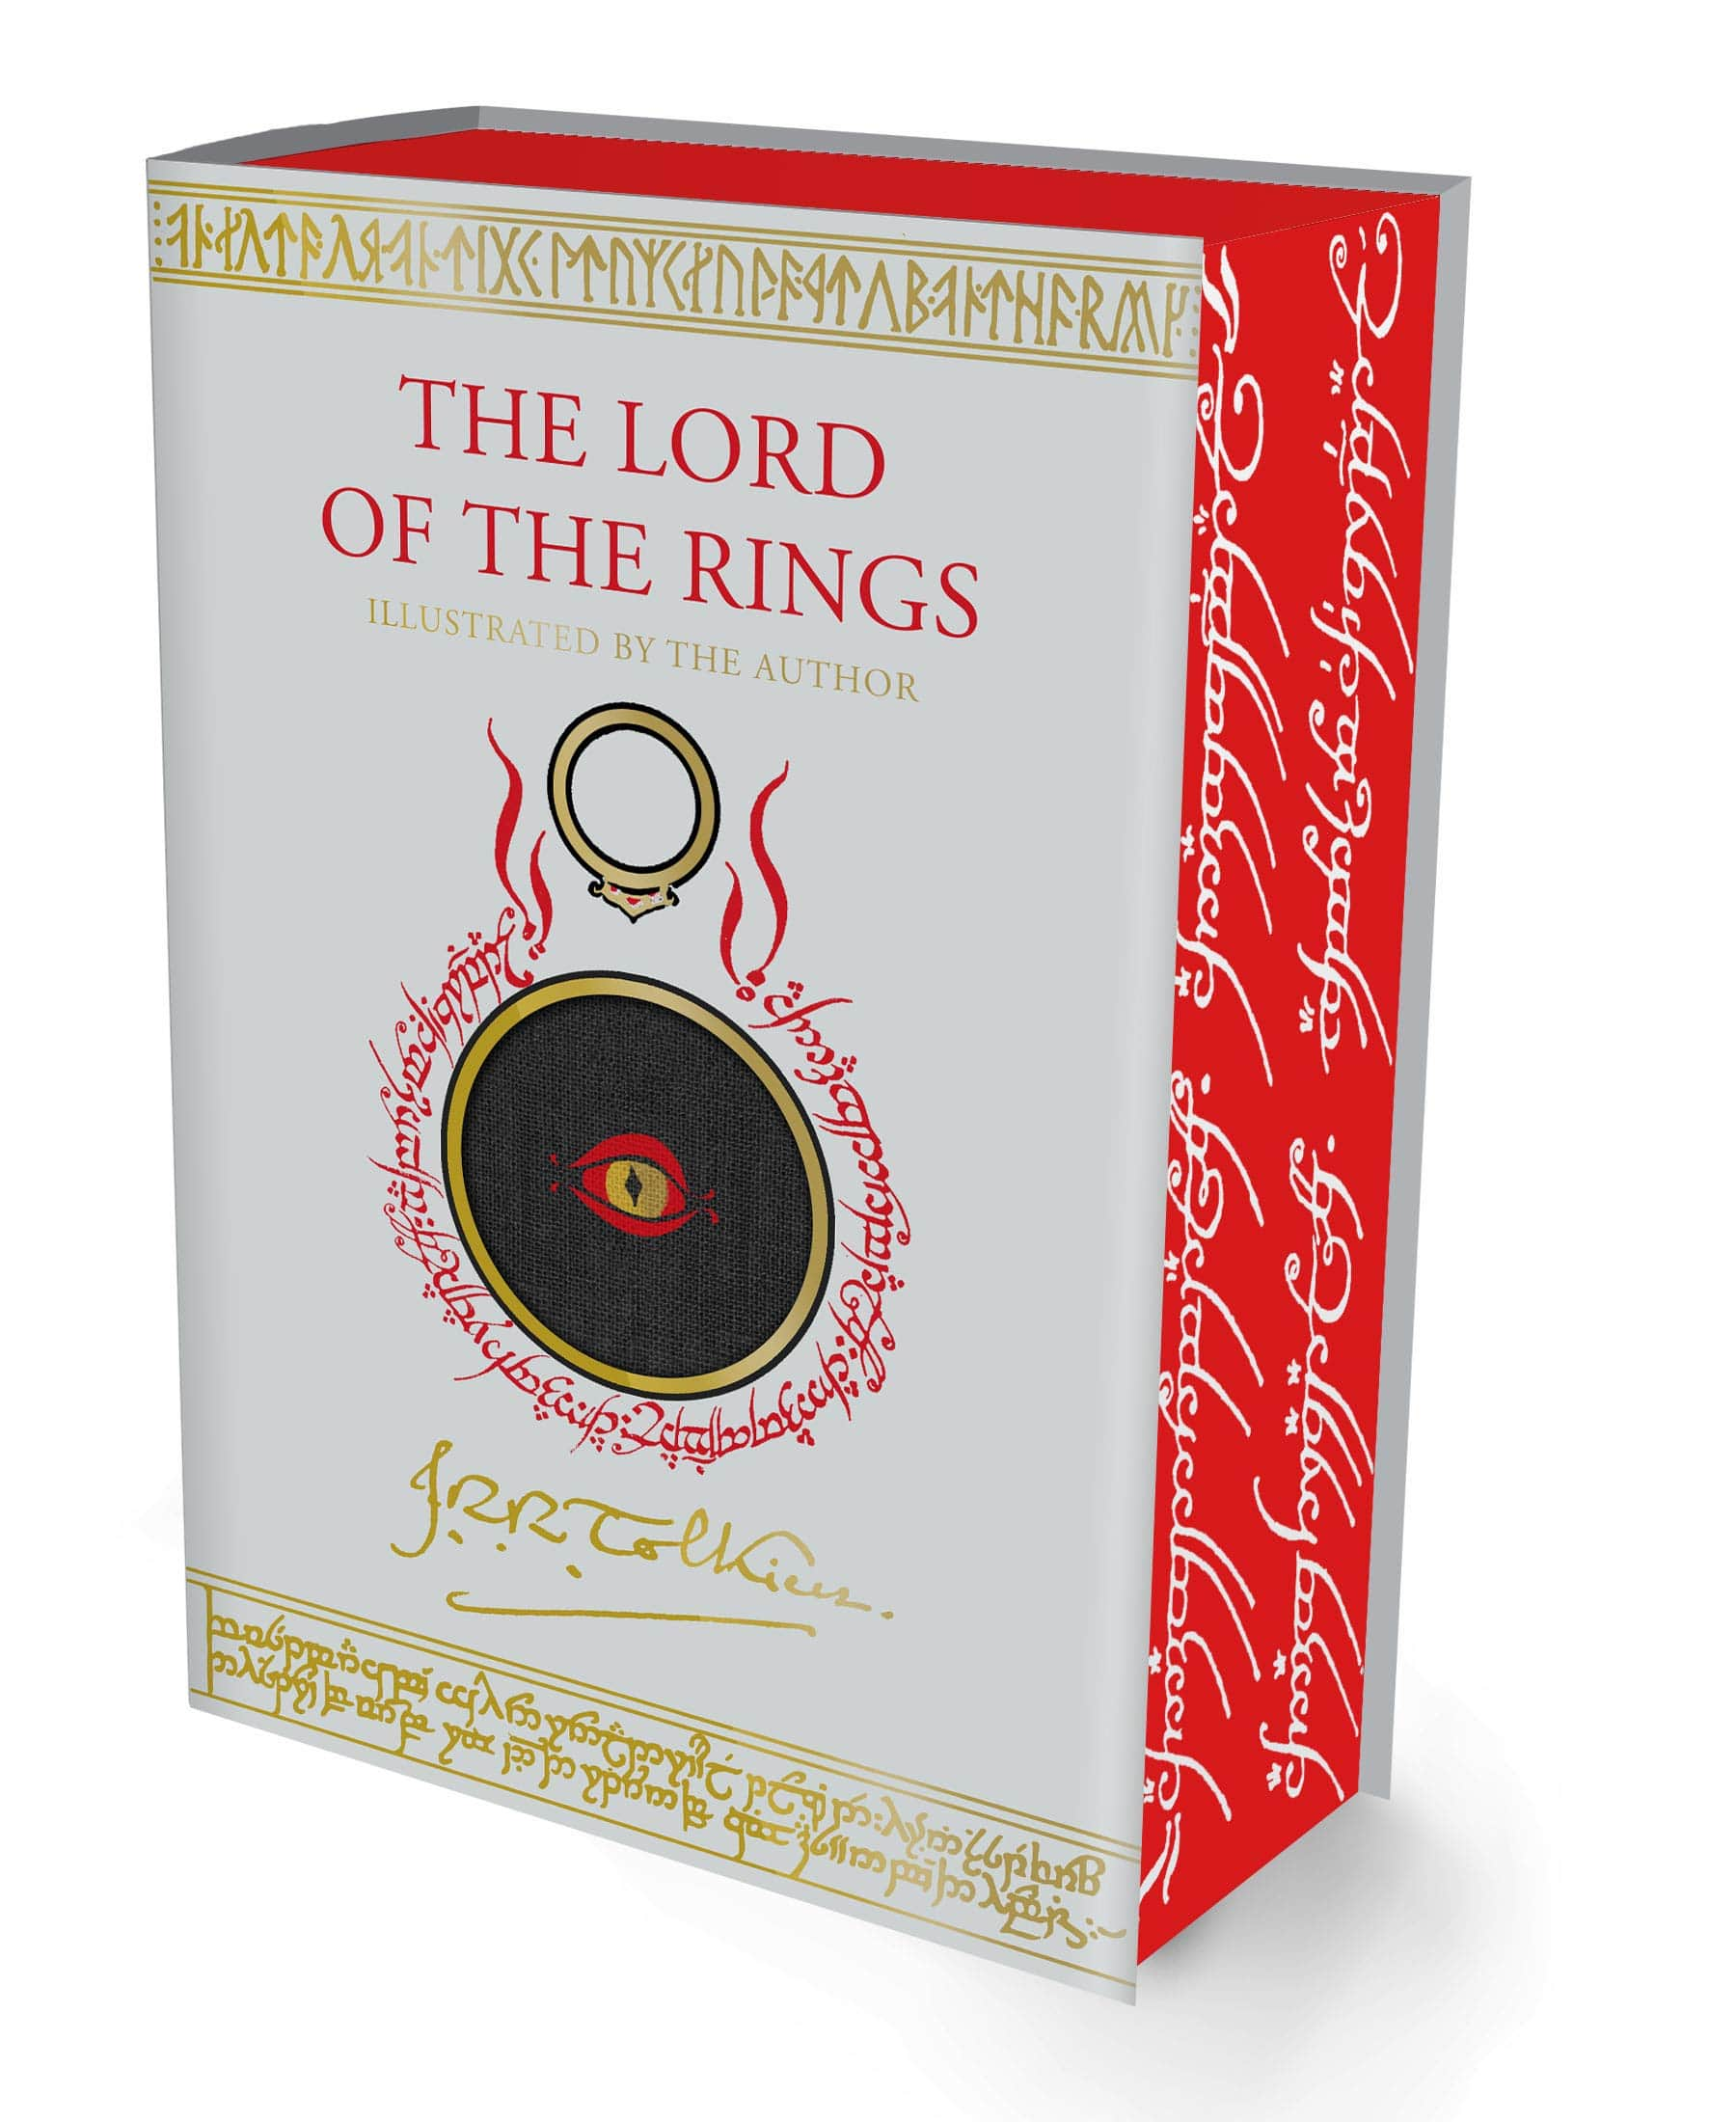 1248-Pages The Lord of the Rings Illustrated Edition Pre-Purchase (Hardcover Book) $45 + Free Shipping via Amazon